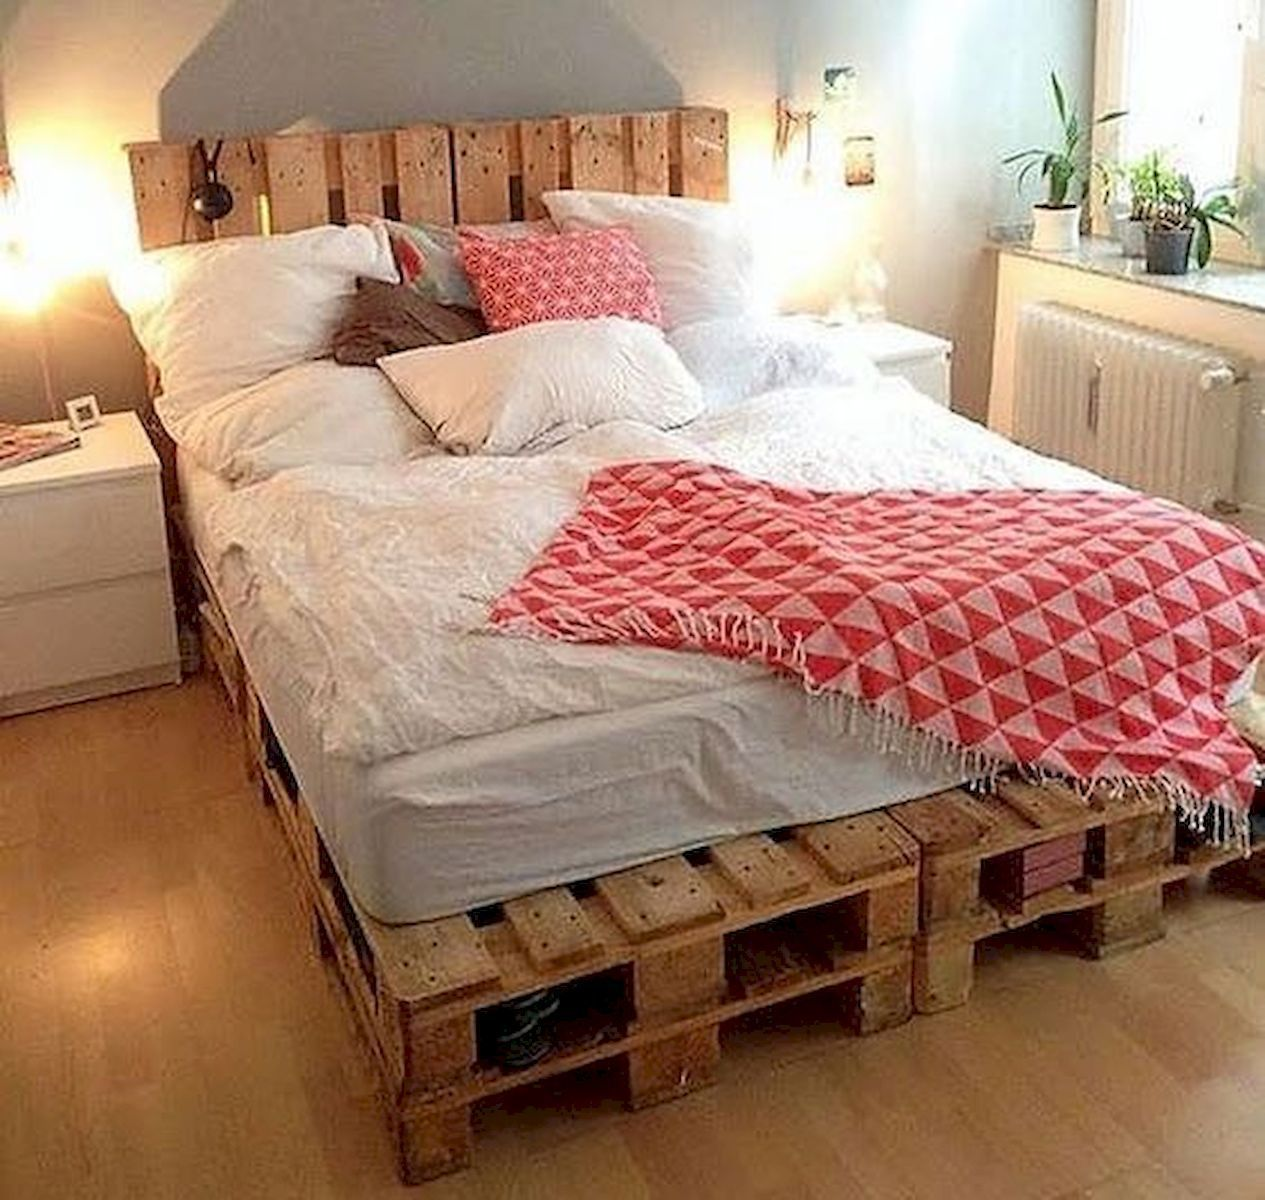 50 Creative Recycled Diy Projects Pallet Beds Design Ideas 13 Pallet Furniture Bedroom Pallet Bed Frames Diy Pallet Bed